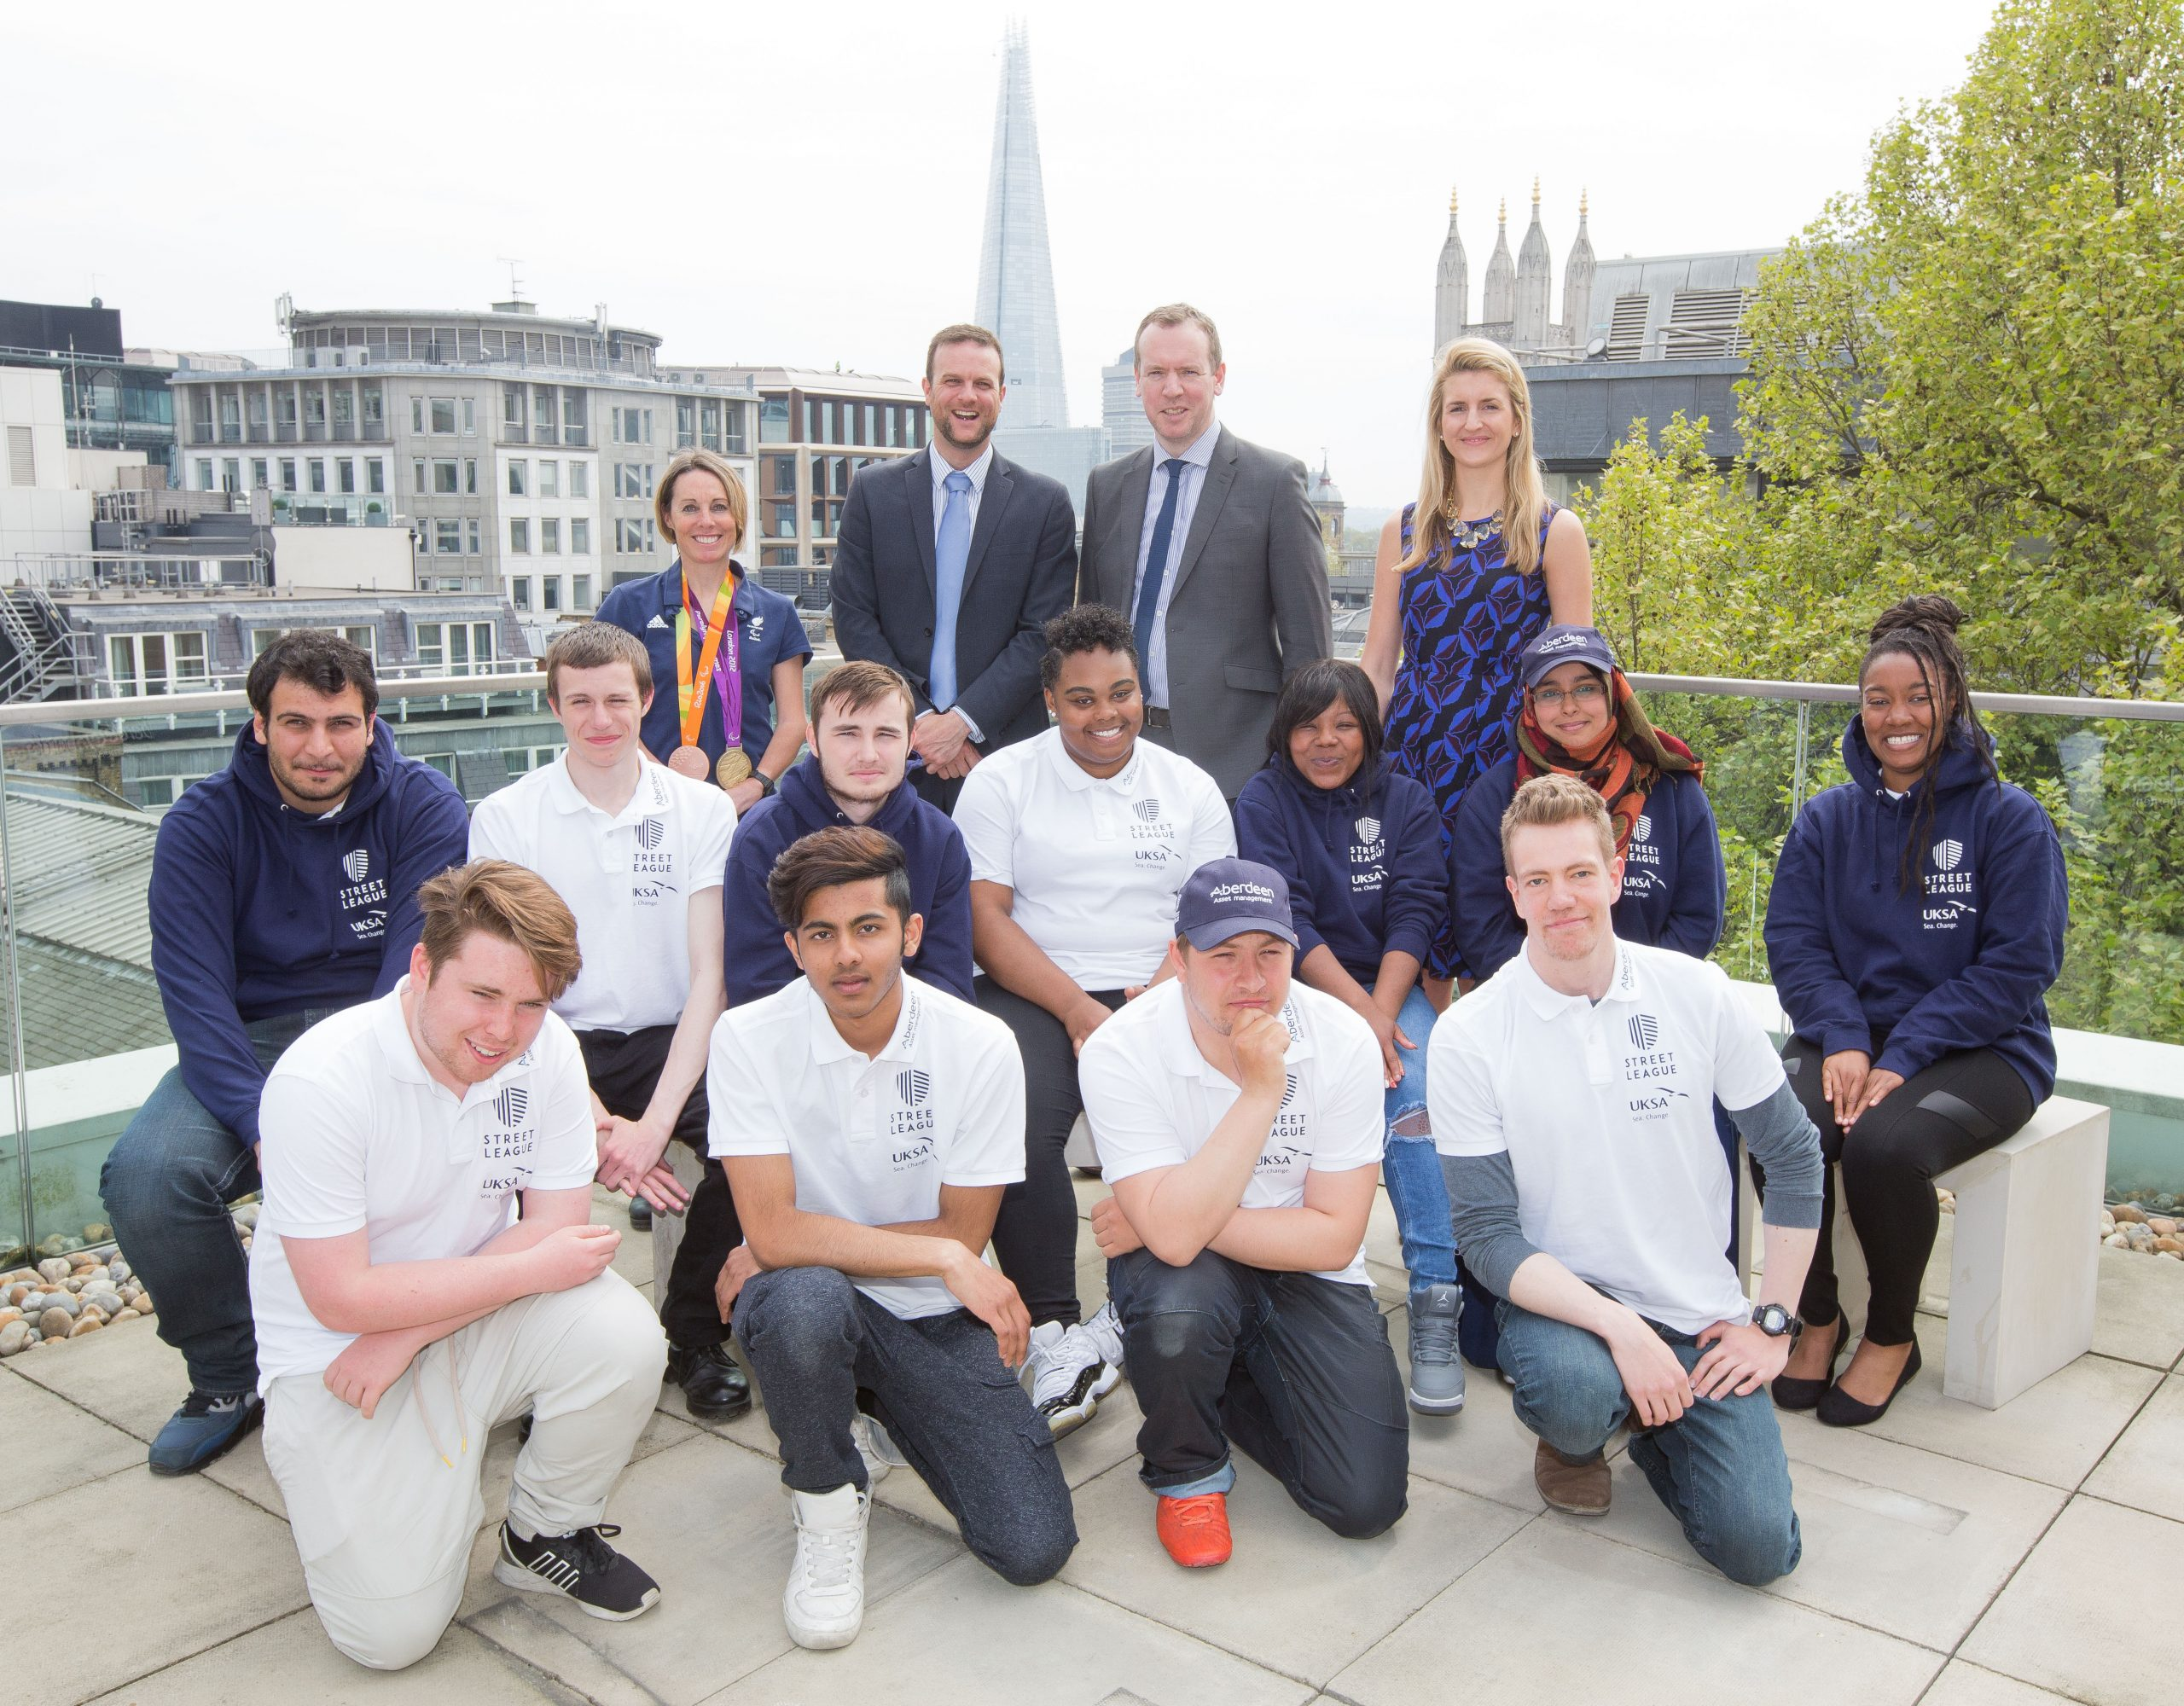 Street League students with UKSA CEO, Ben Willows